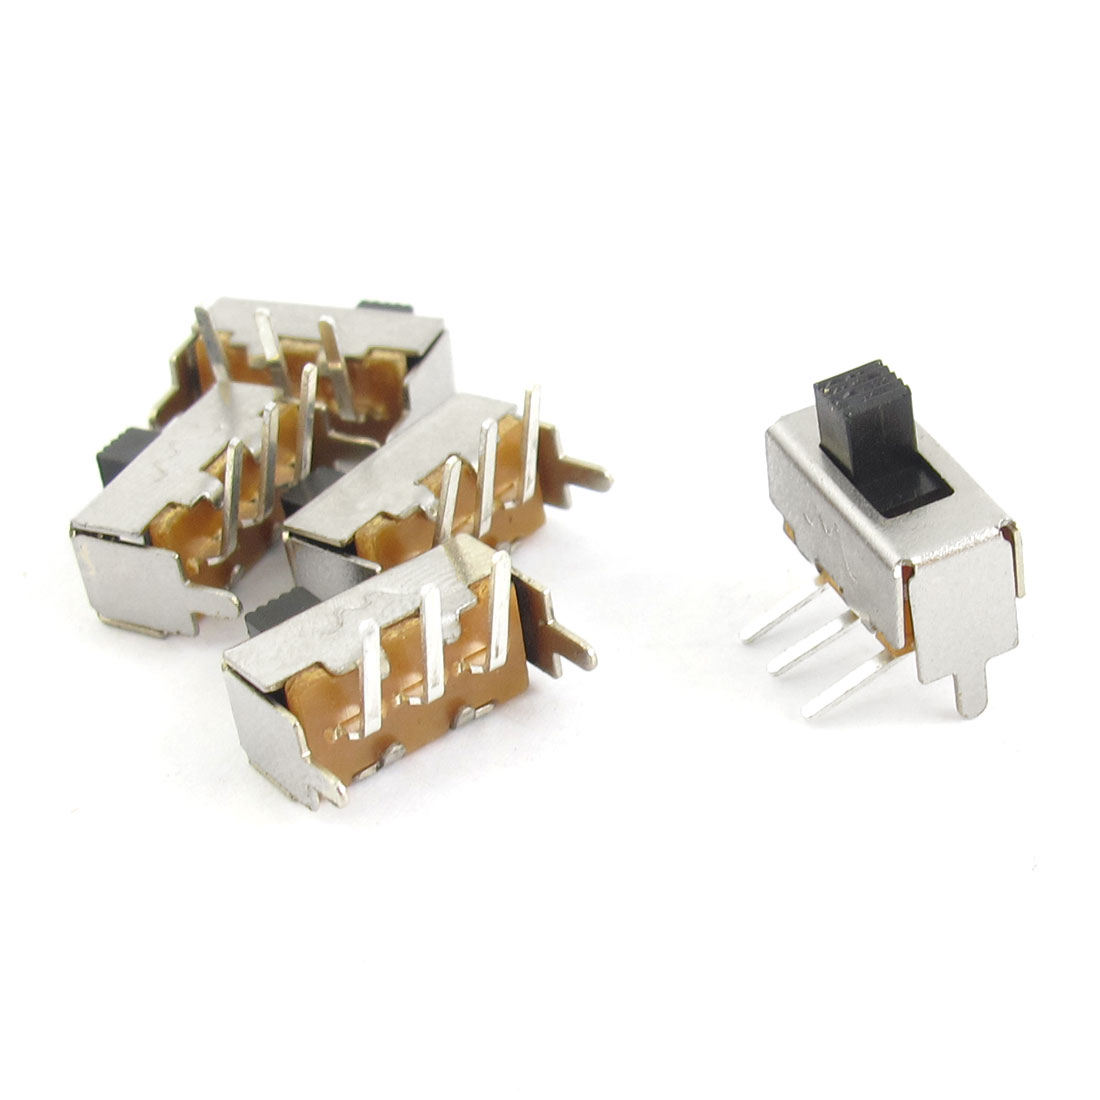 5 Pcs On/Off 3 Pin SPDT Mini PCB Slide Switch Replacement DC 50V 0.3A